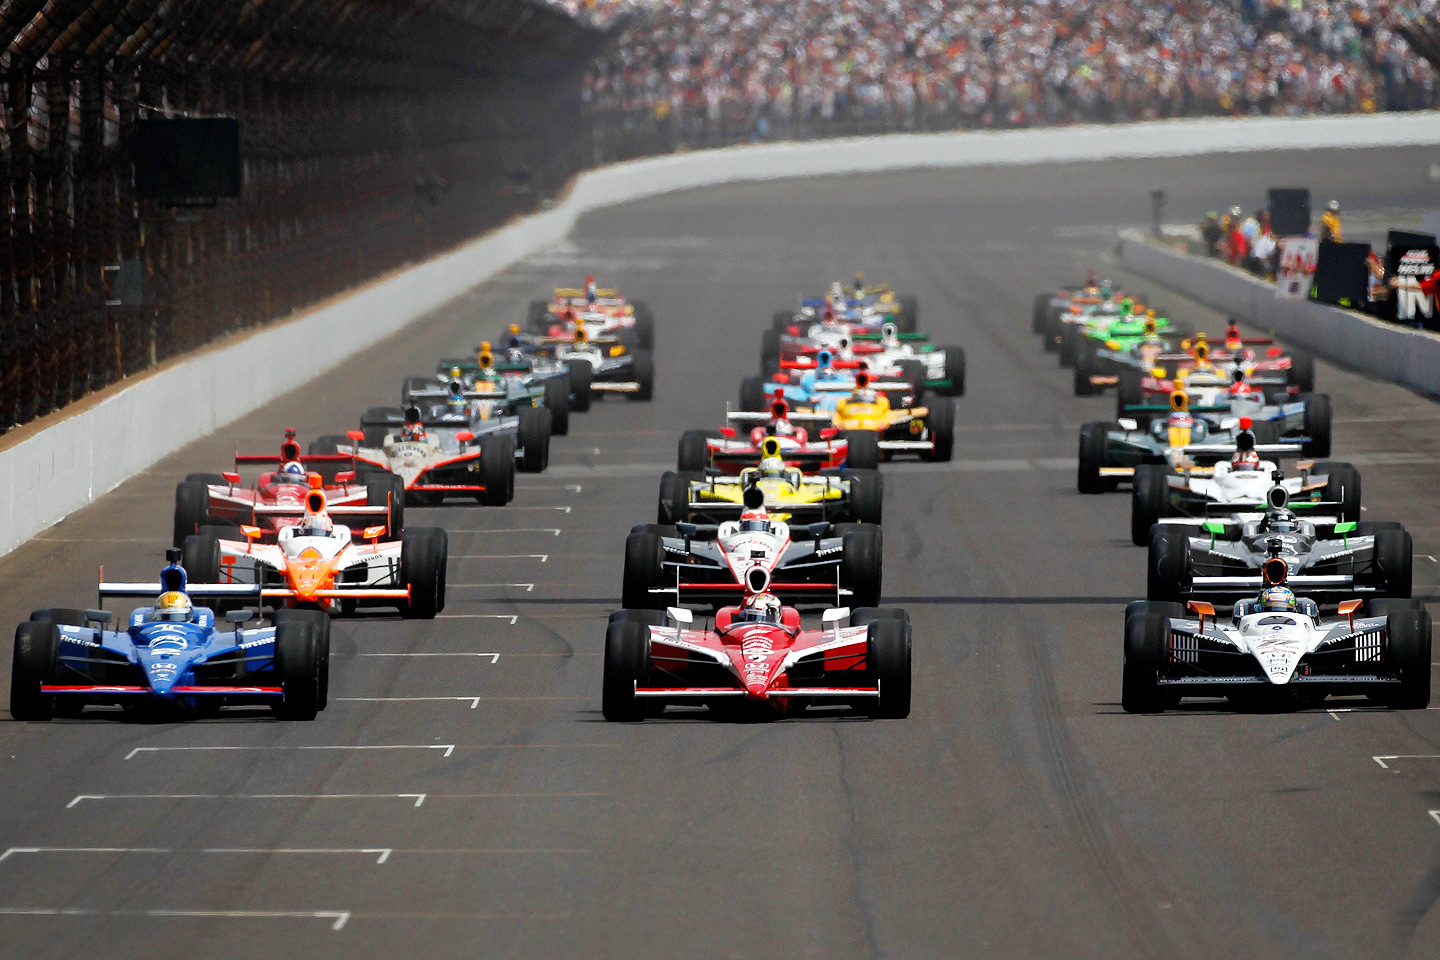 When Did Indy Car Racing Start